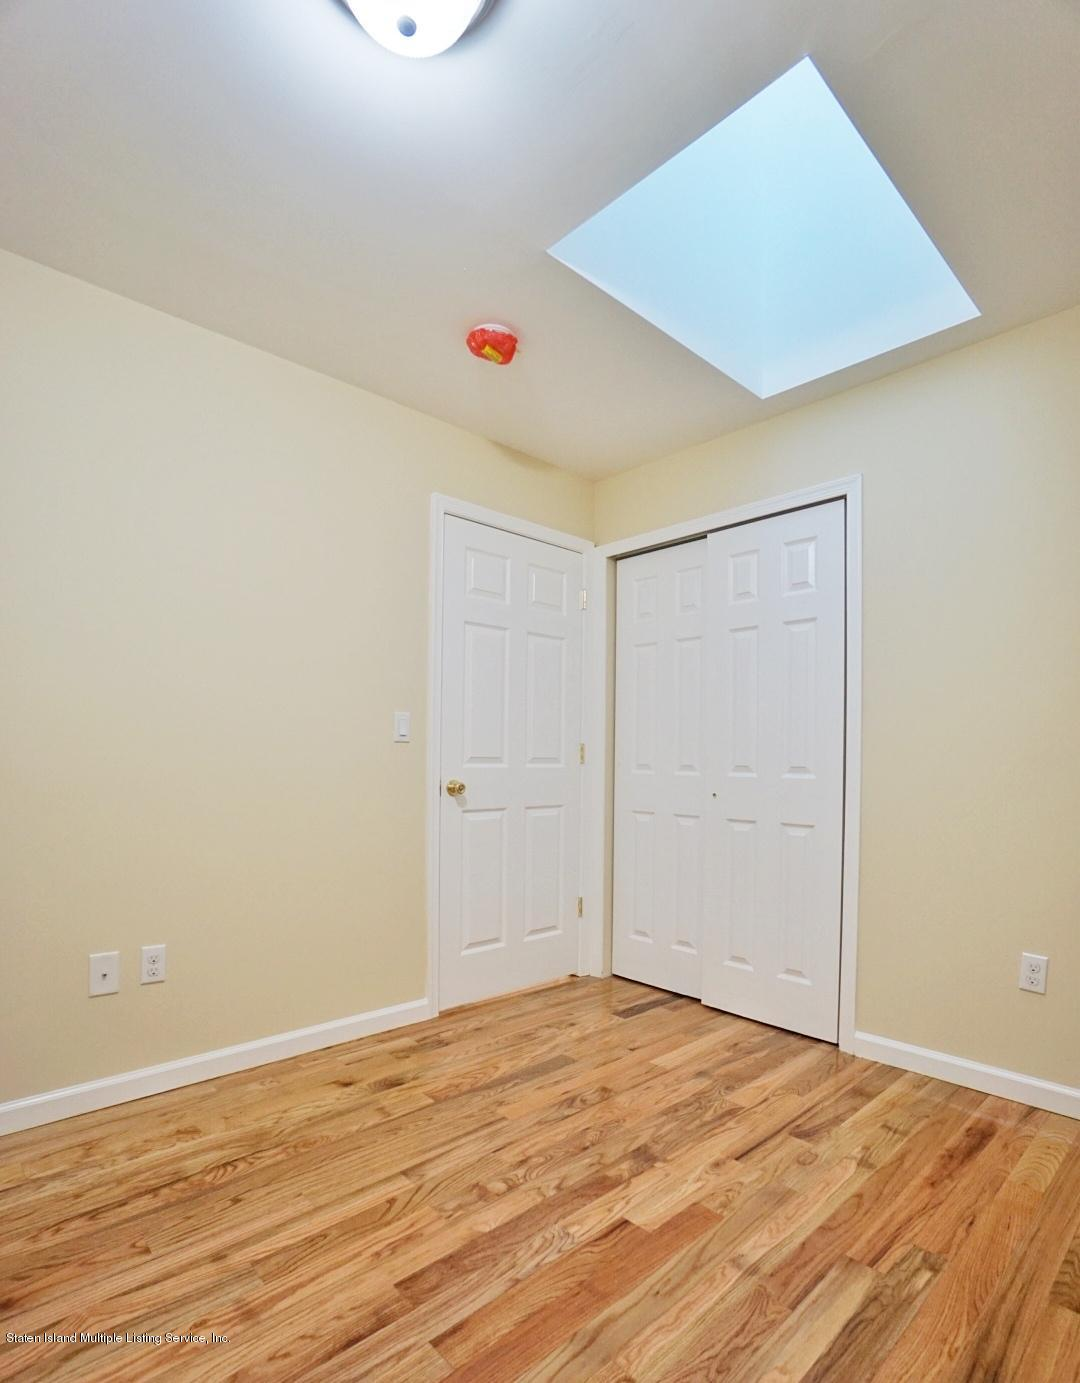 Single Family - Attached 34 Bamberger Lane  Staten Island, NY 10312, MLS-1135521-18